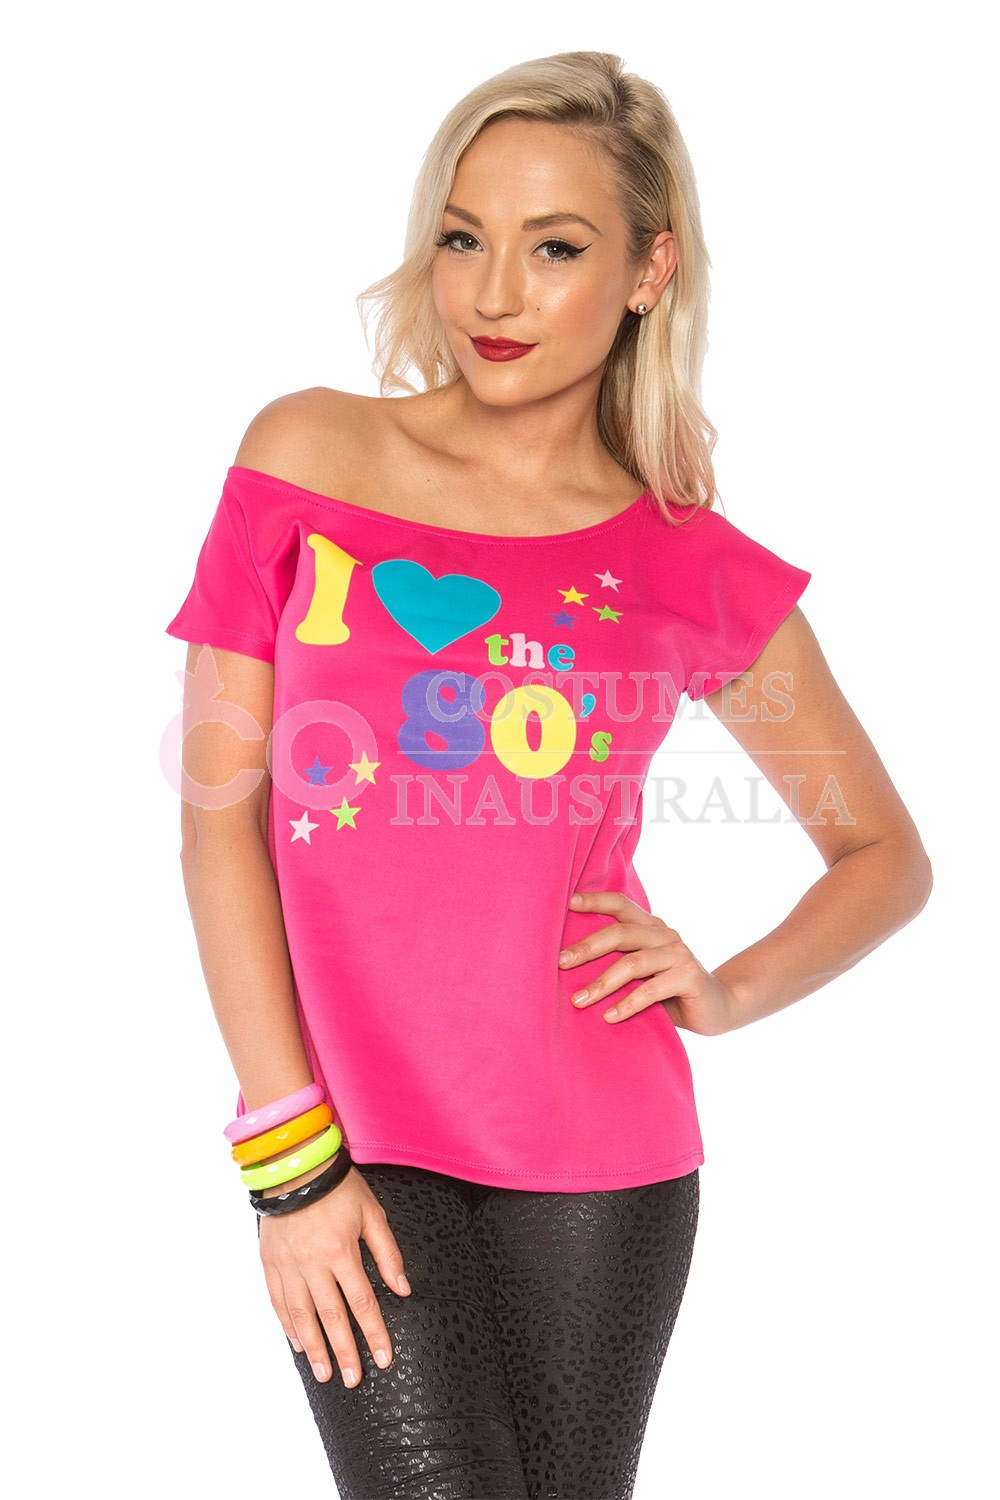 80 Best 78 Tarot Nautical Deck Images On Pinterest: I Love The 80s T-shirt Costume 1980s 80s Party Fancy Dress